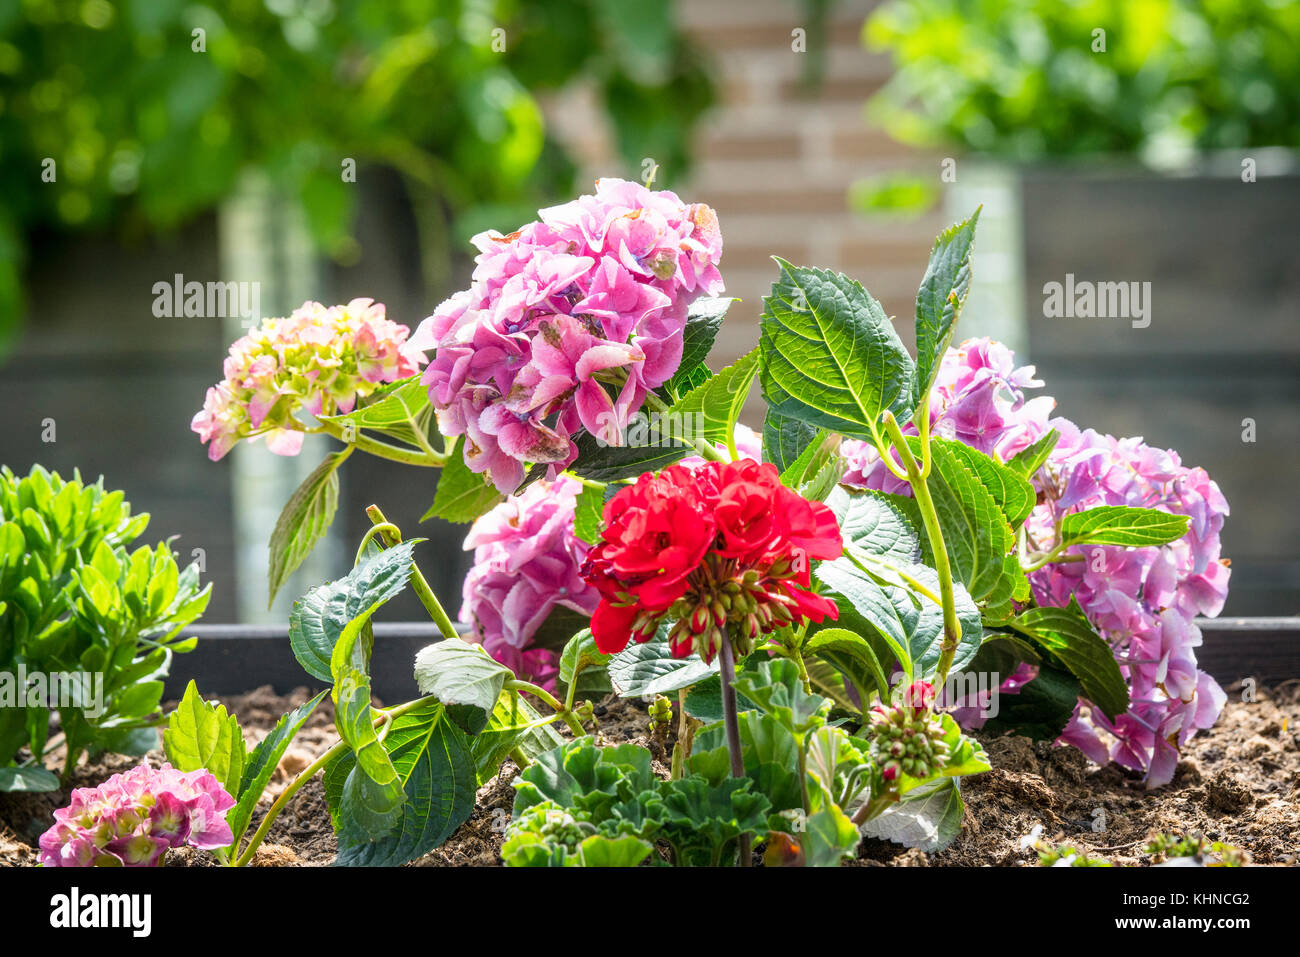 Red and violet flowers in a flowerbed in a garden at summertime - Stock Image